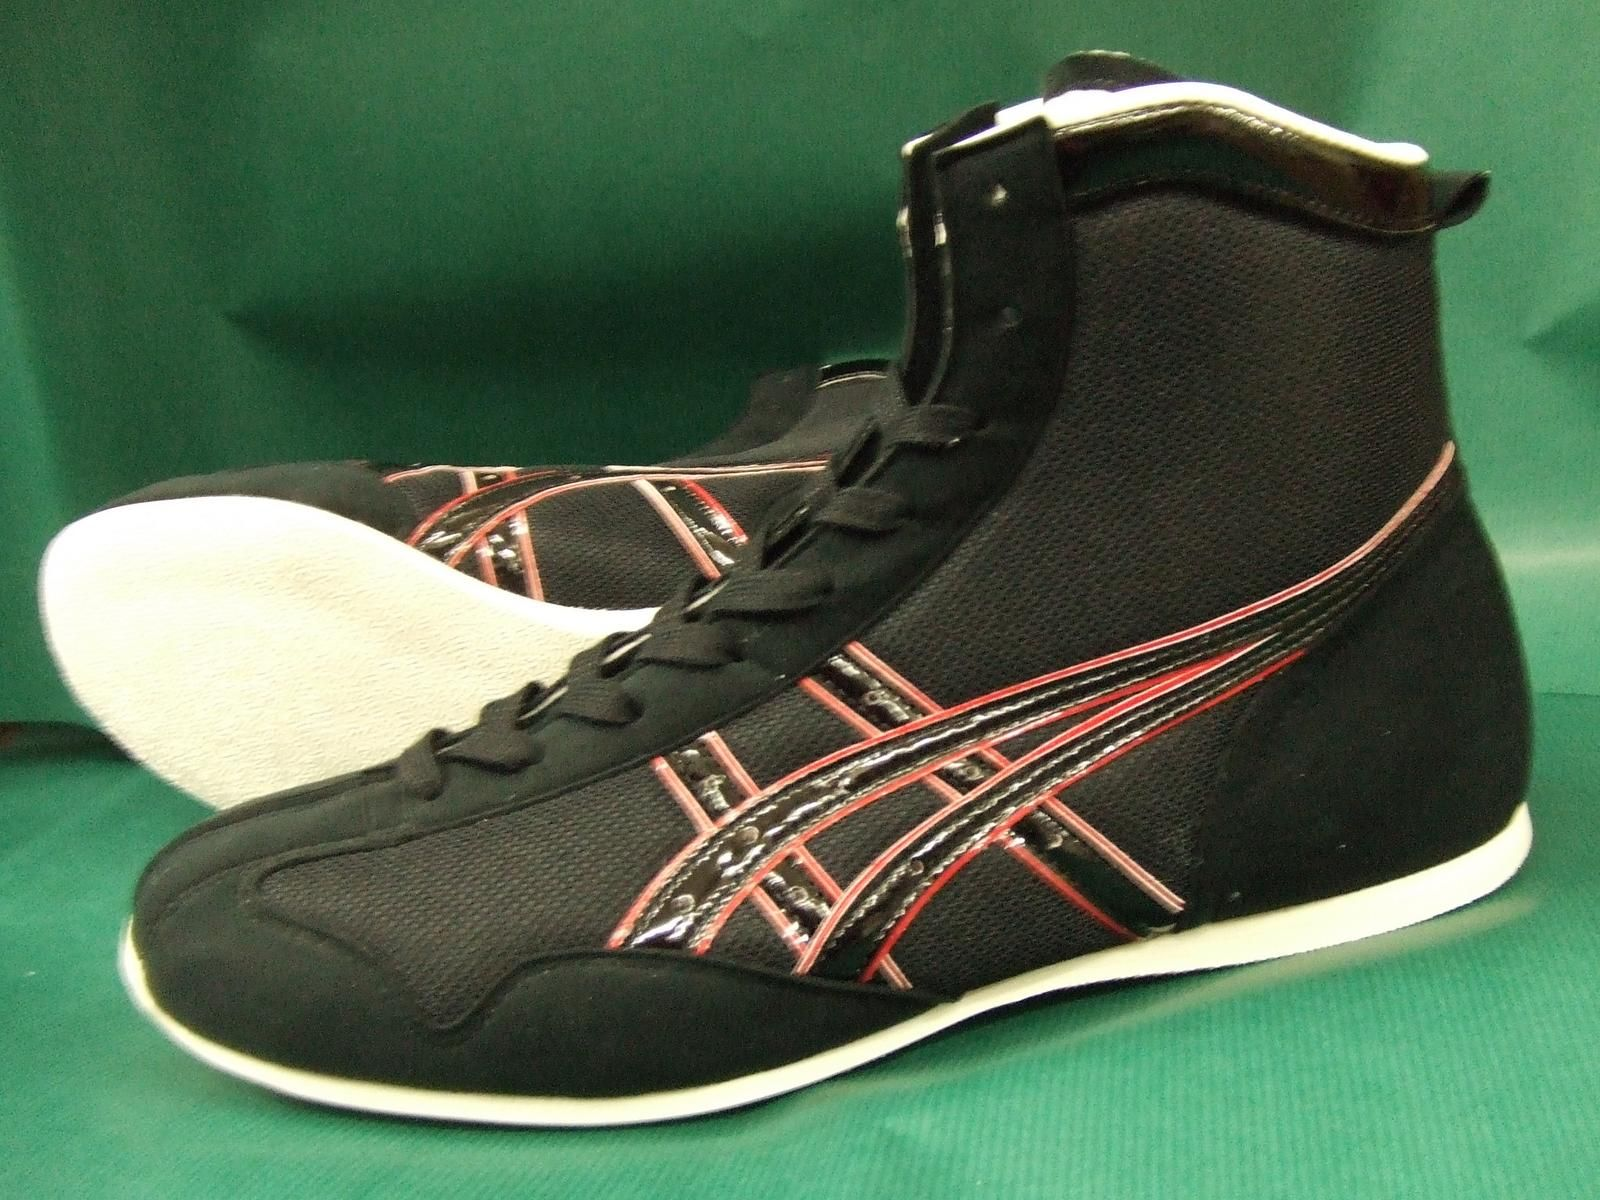 12 best ideas about Wrestling Shoes I want on Pinterest | Models ...